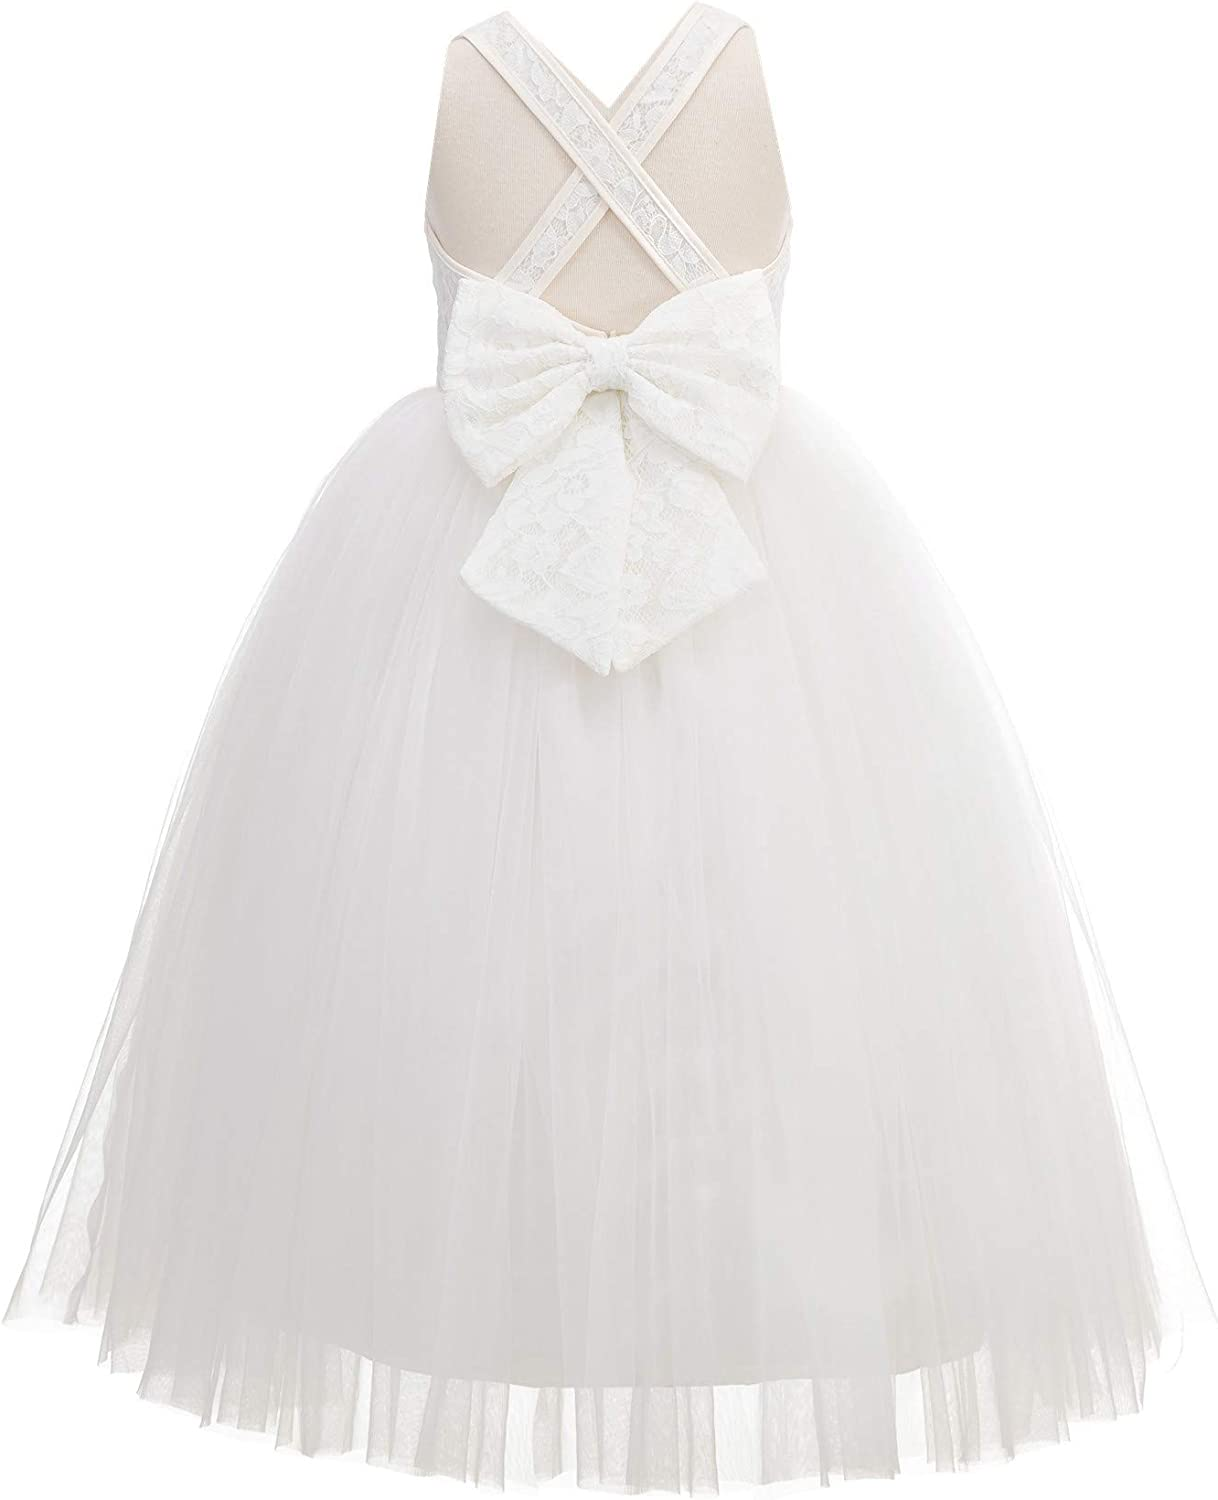 Crossed Straps Lace Flower Girl Dress Junior Holy Communion First Baptism 204